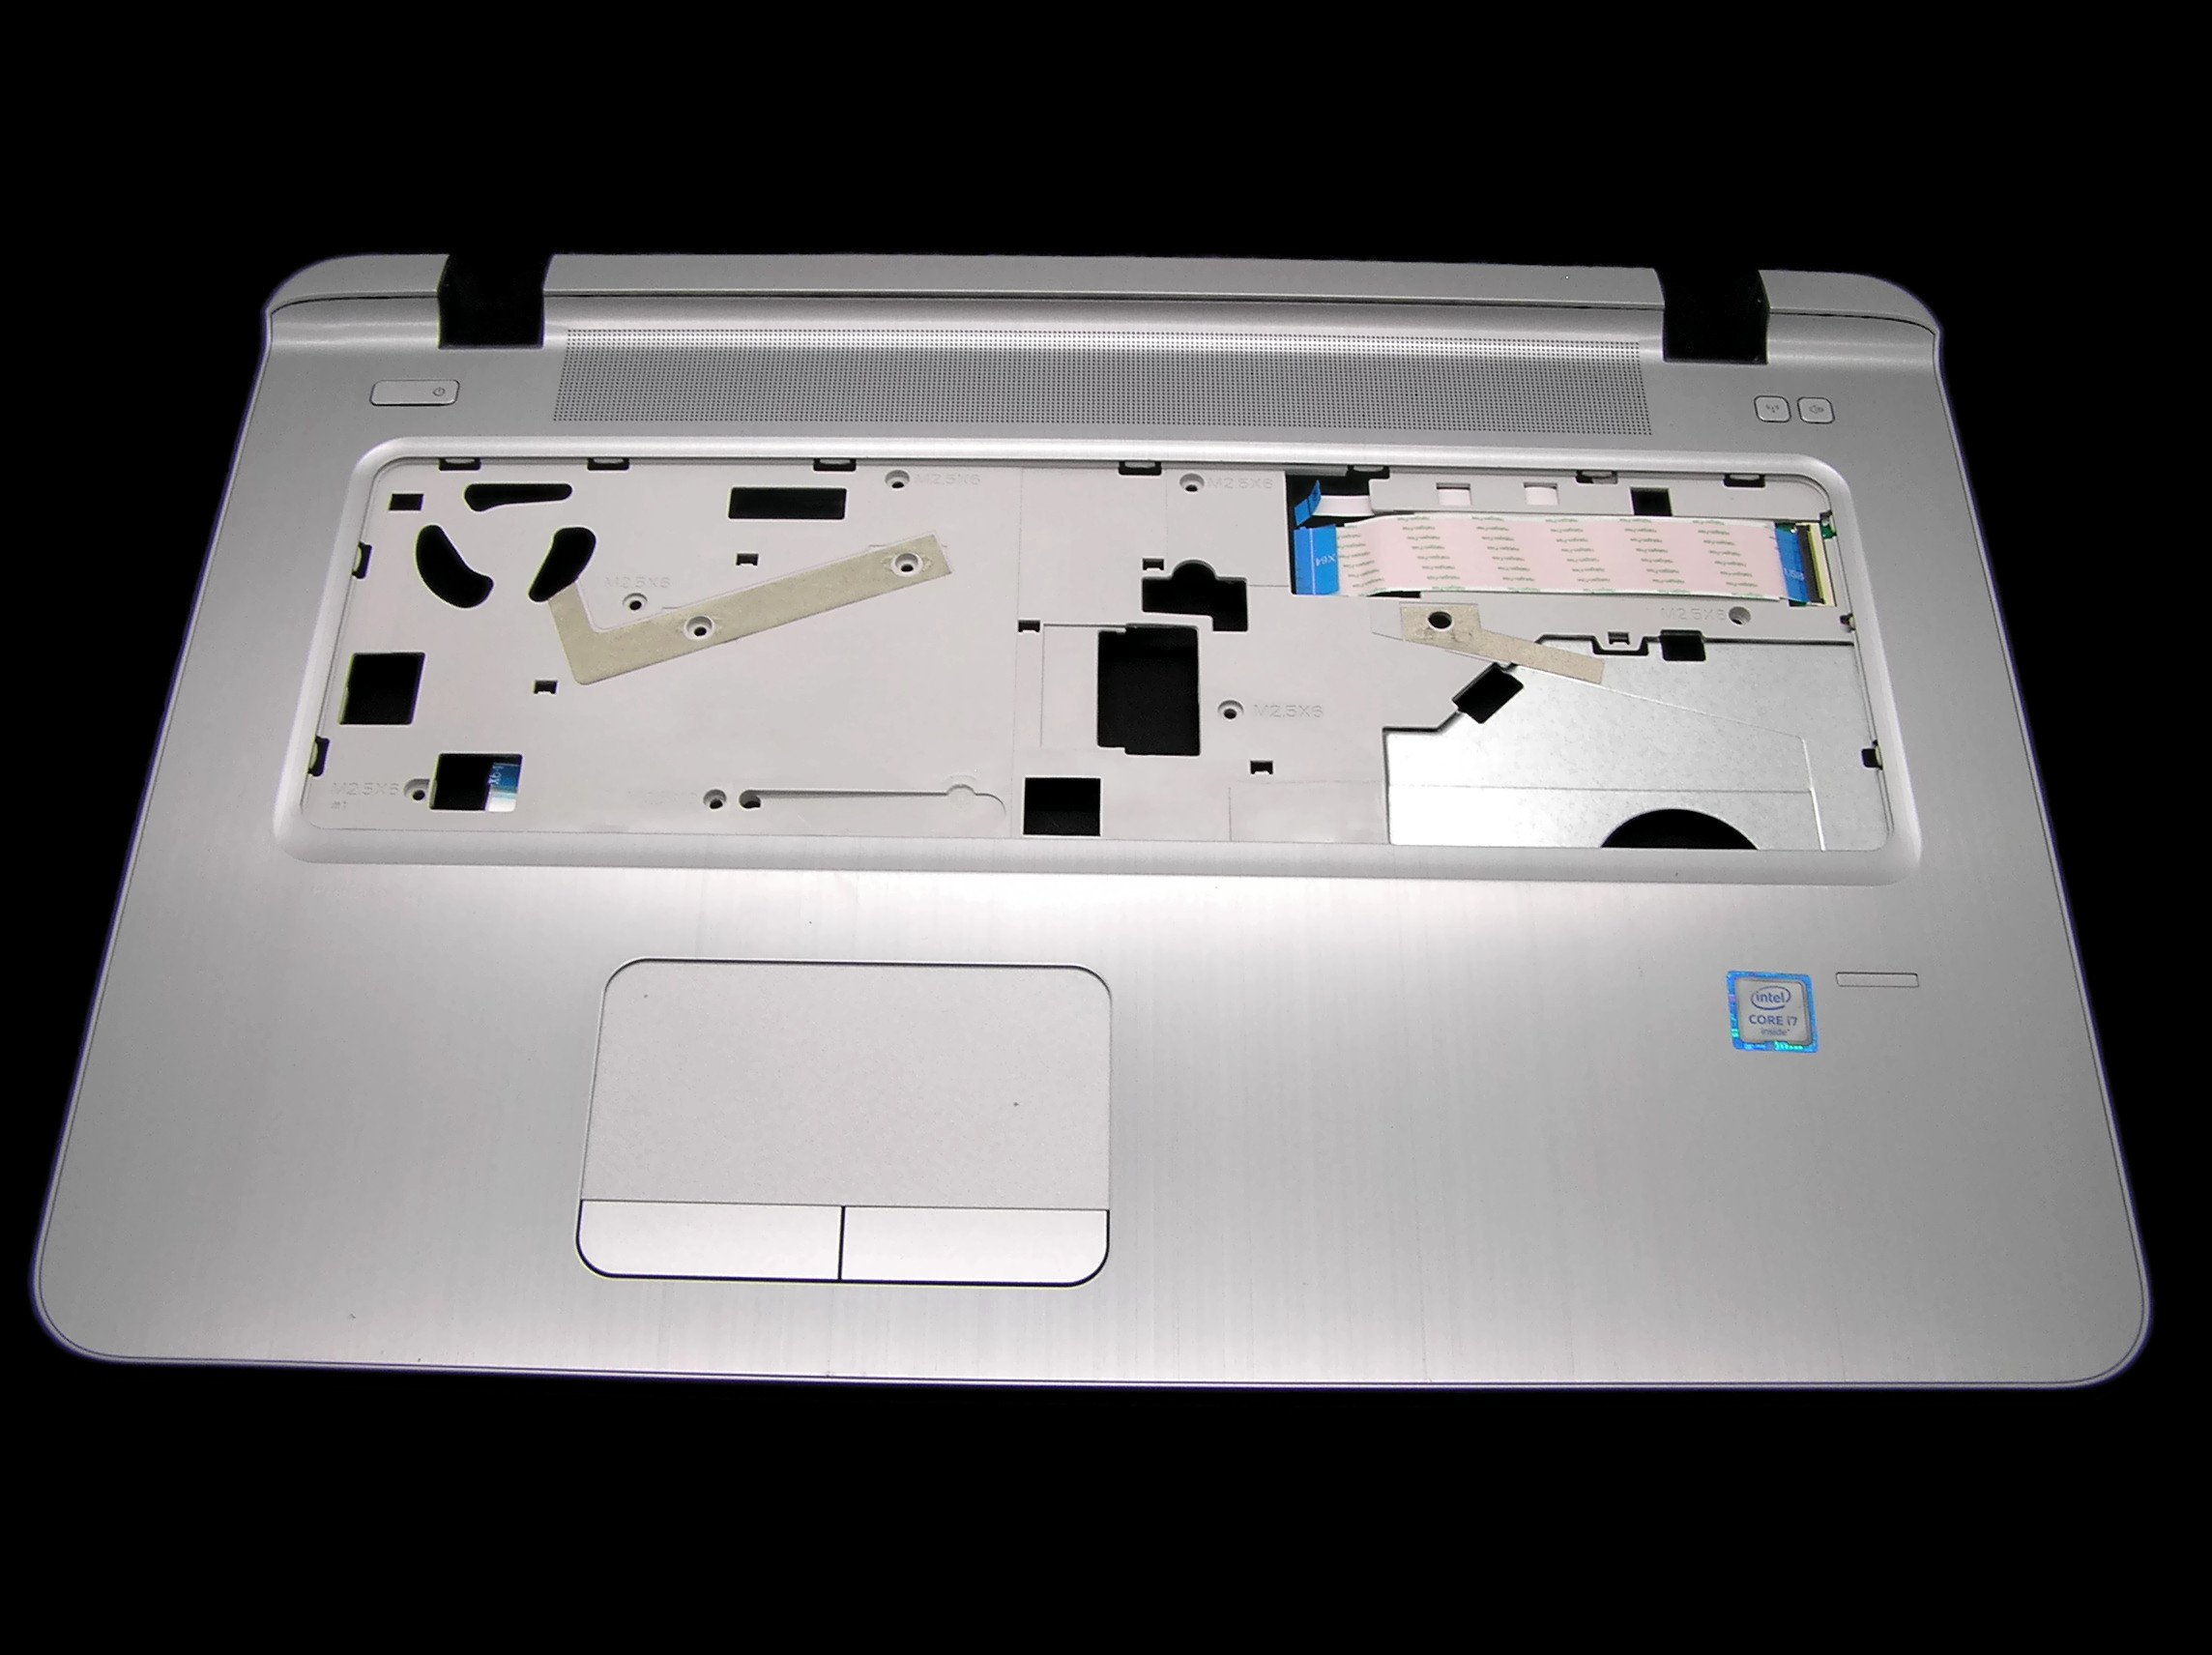 New Genuine HP Probook 470 G3 Series17.3 Touchpad Palmrest 827036-001 by for HP (Image #1)